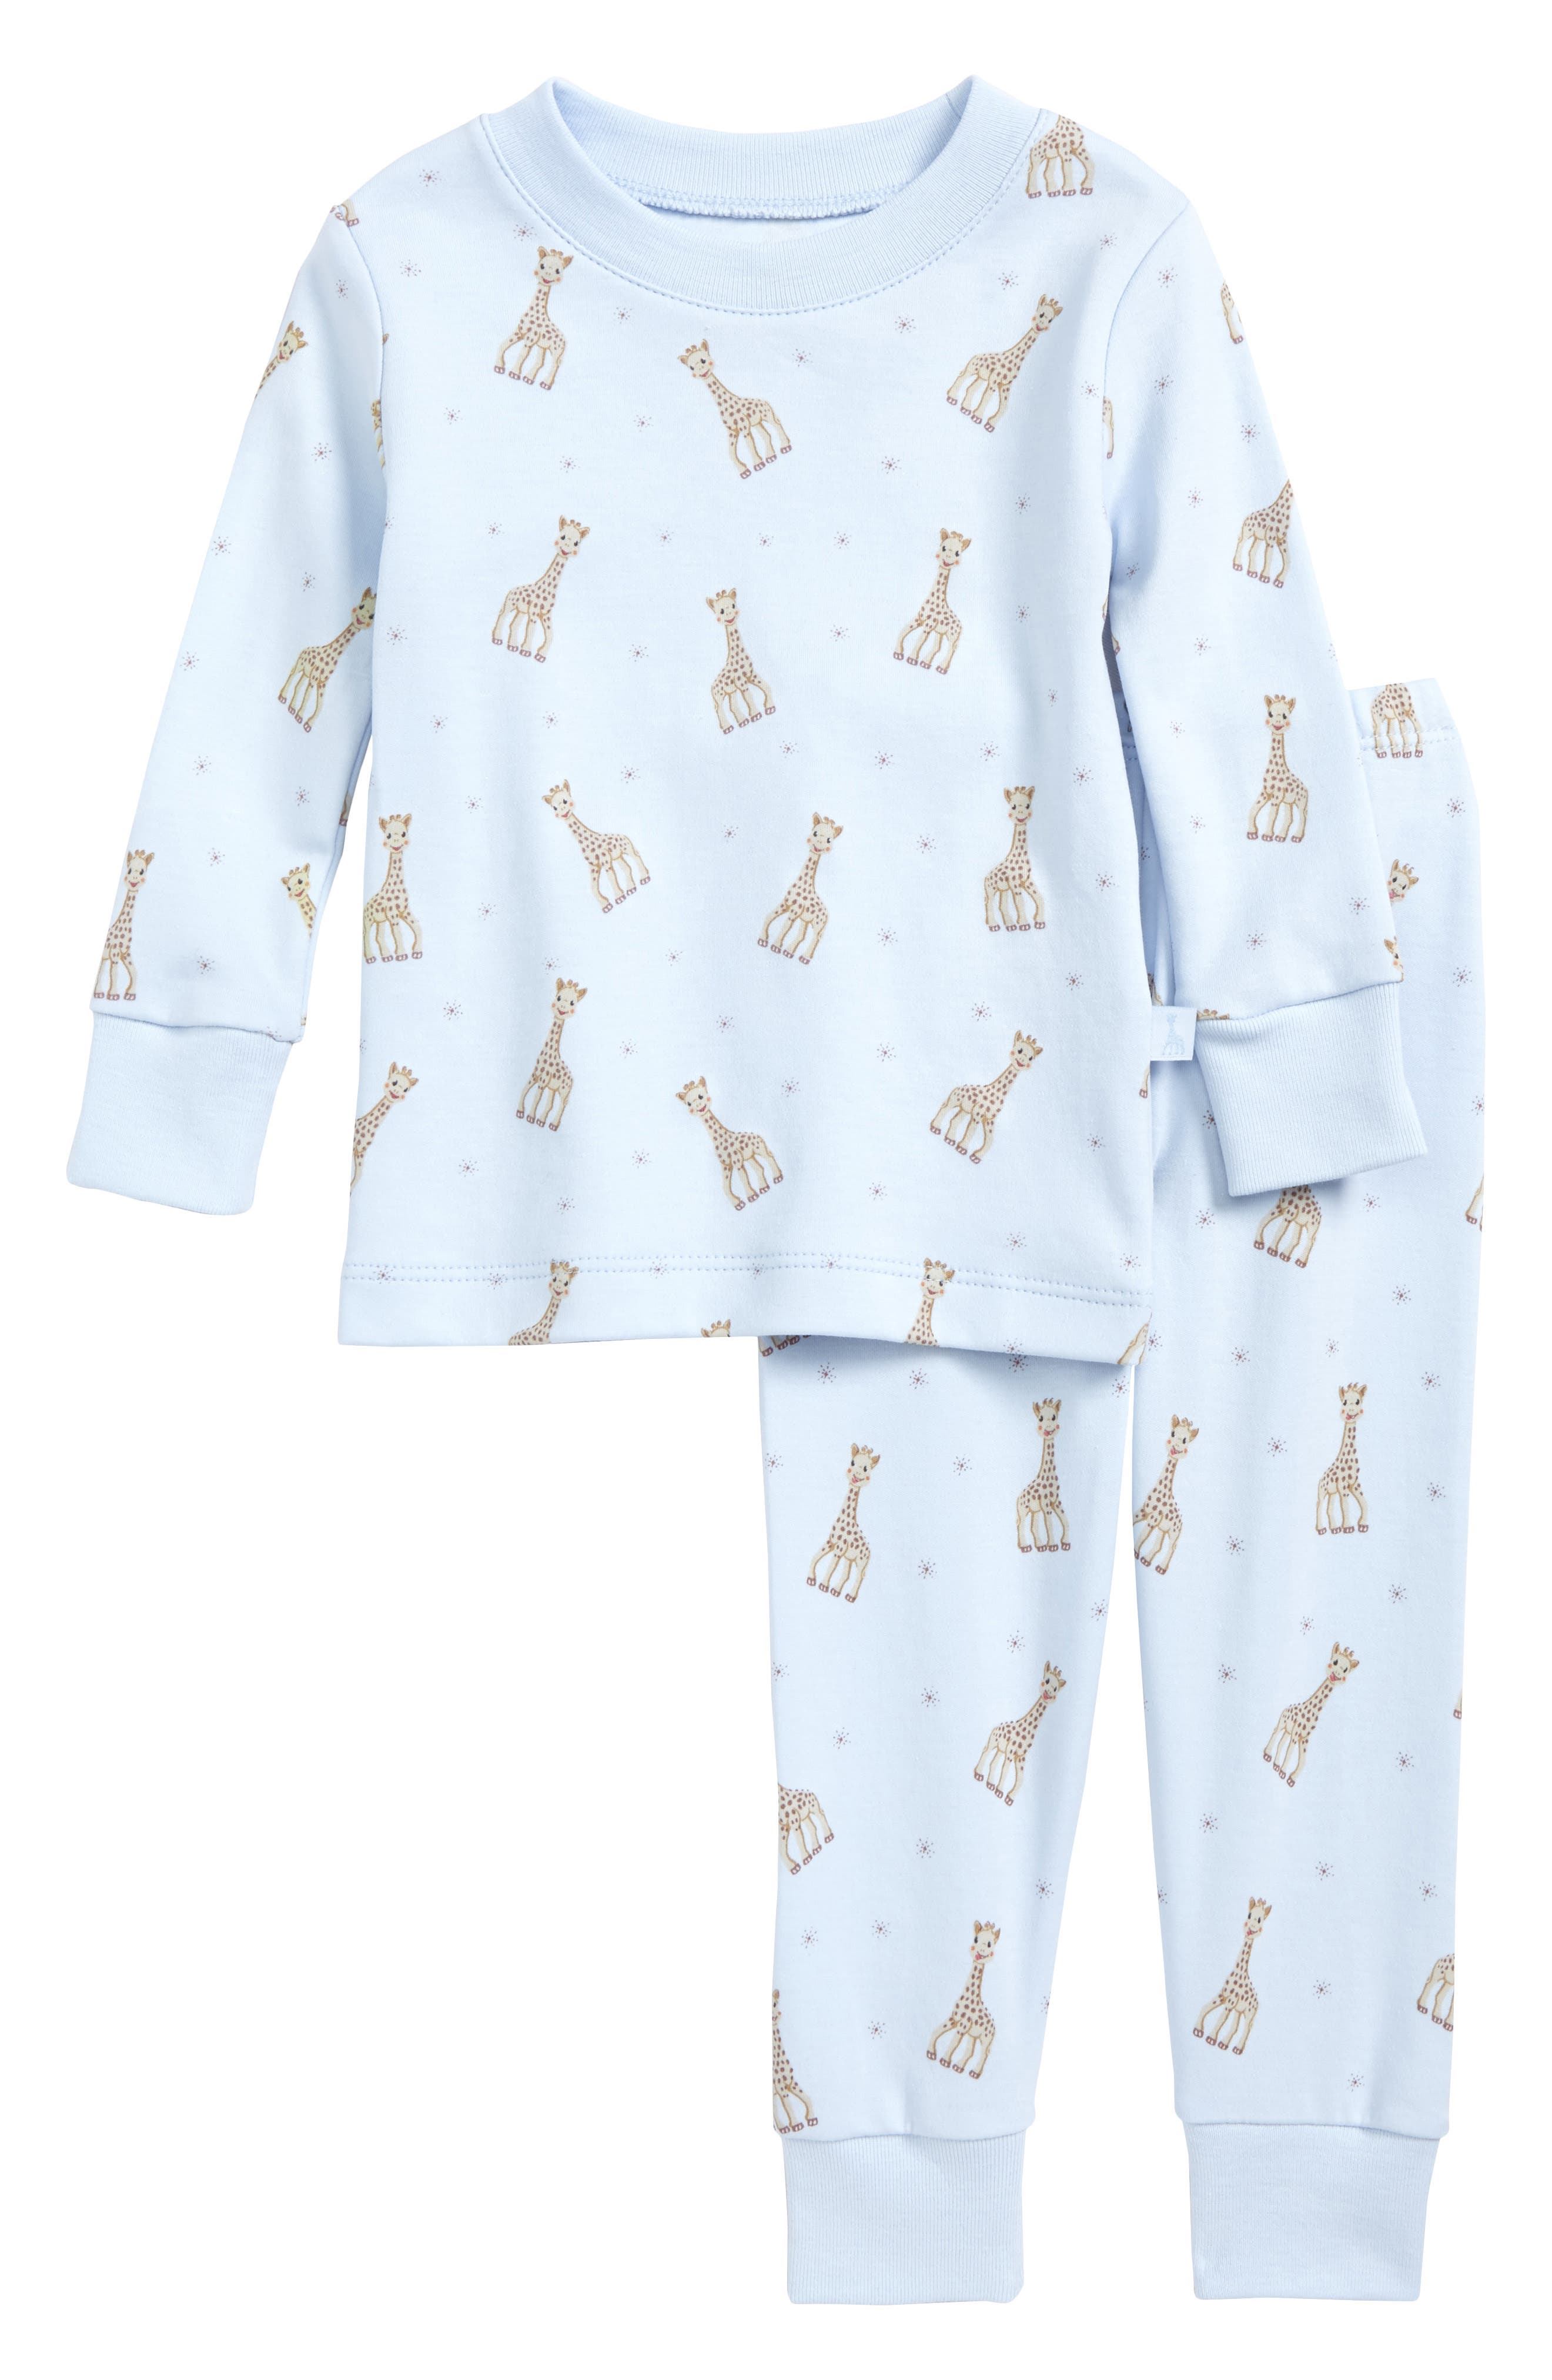 Sophie la Girafe Fitted Two-Piece Pajamas,                         Main,                         color, Light Blue Print